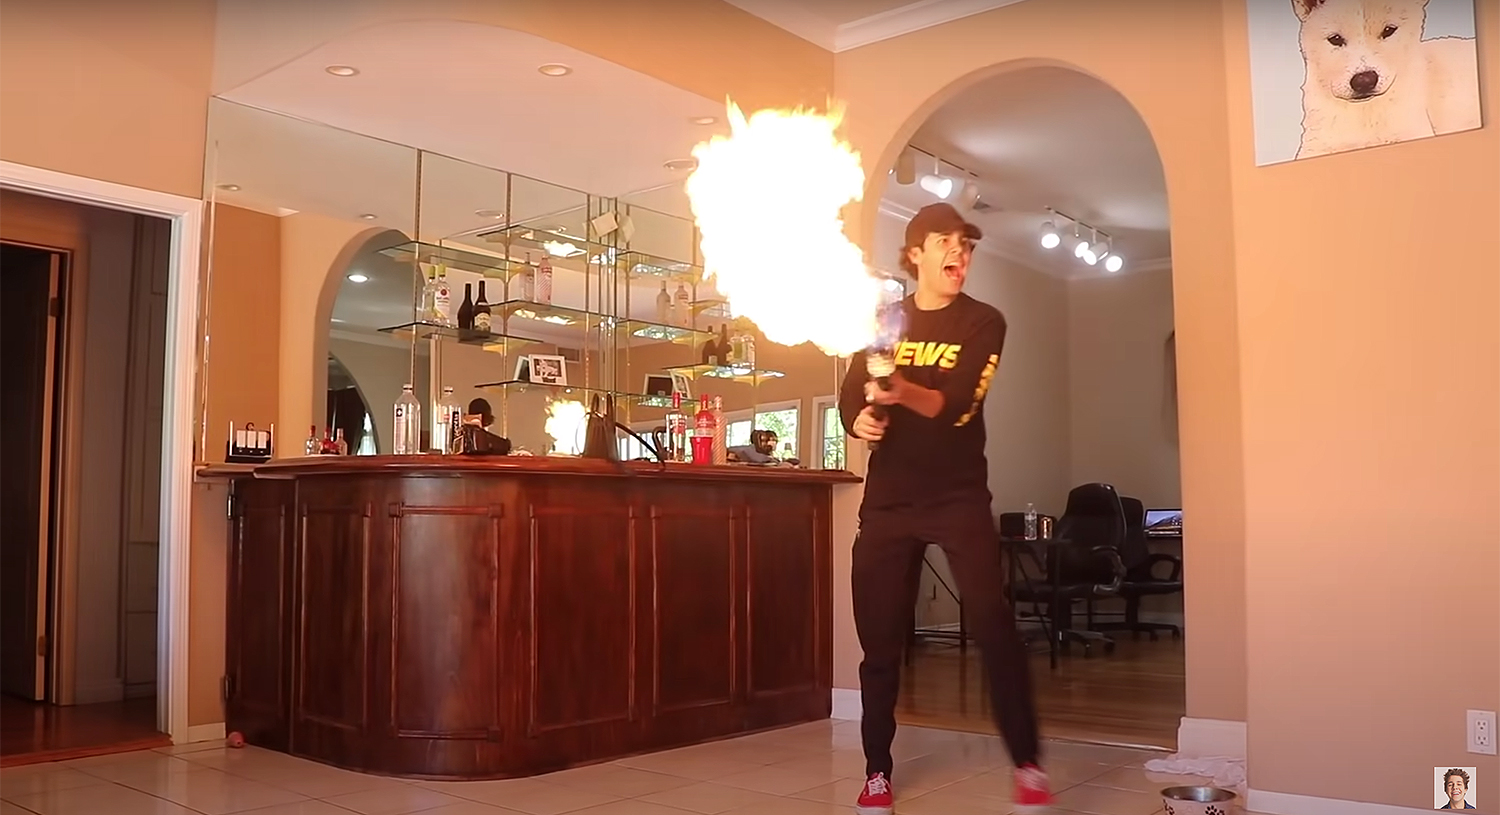 DAVID DOBRIK'S FLAMETHROWER